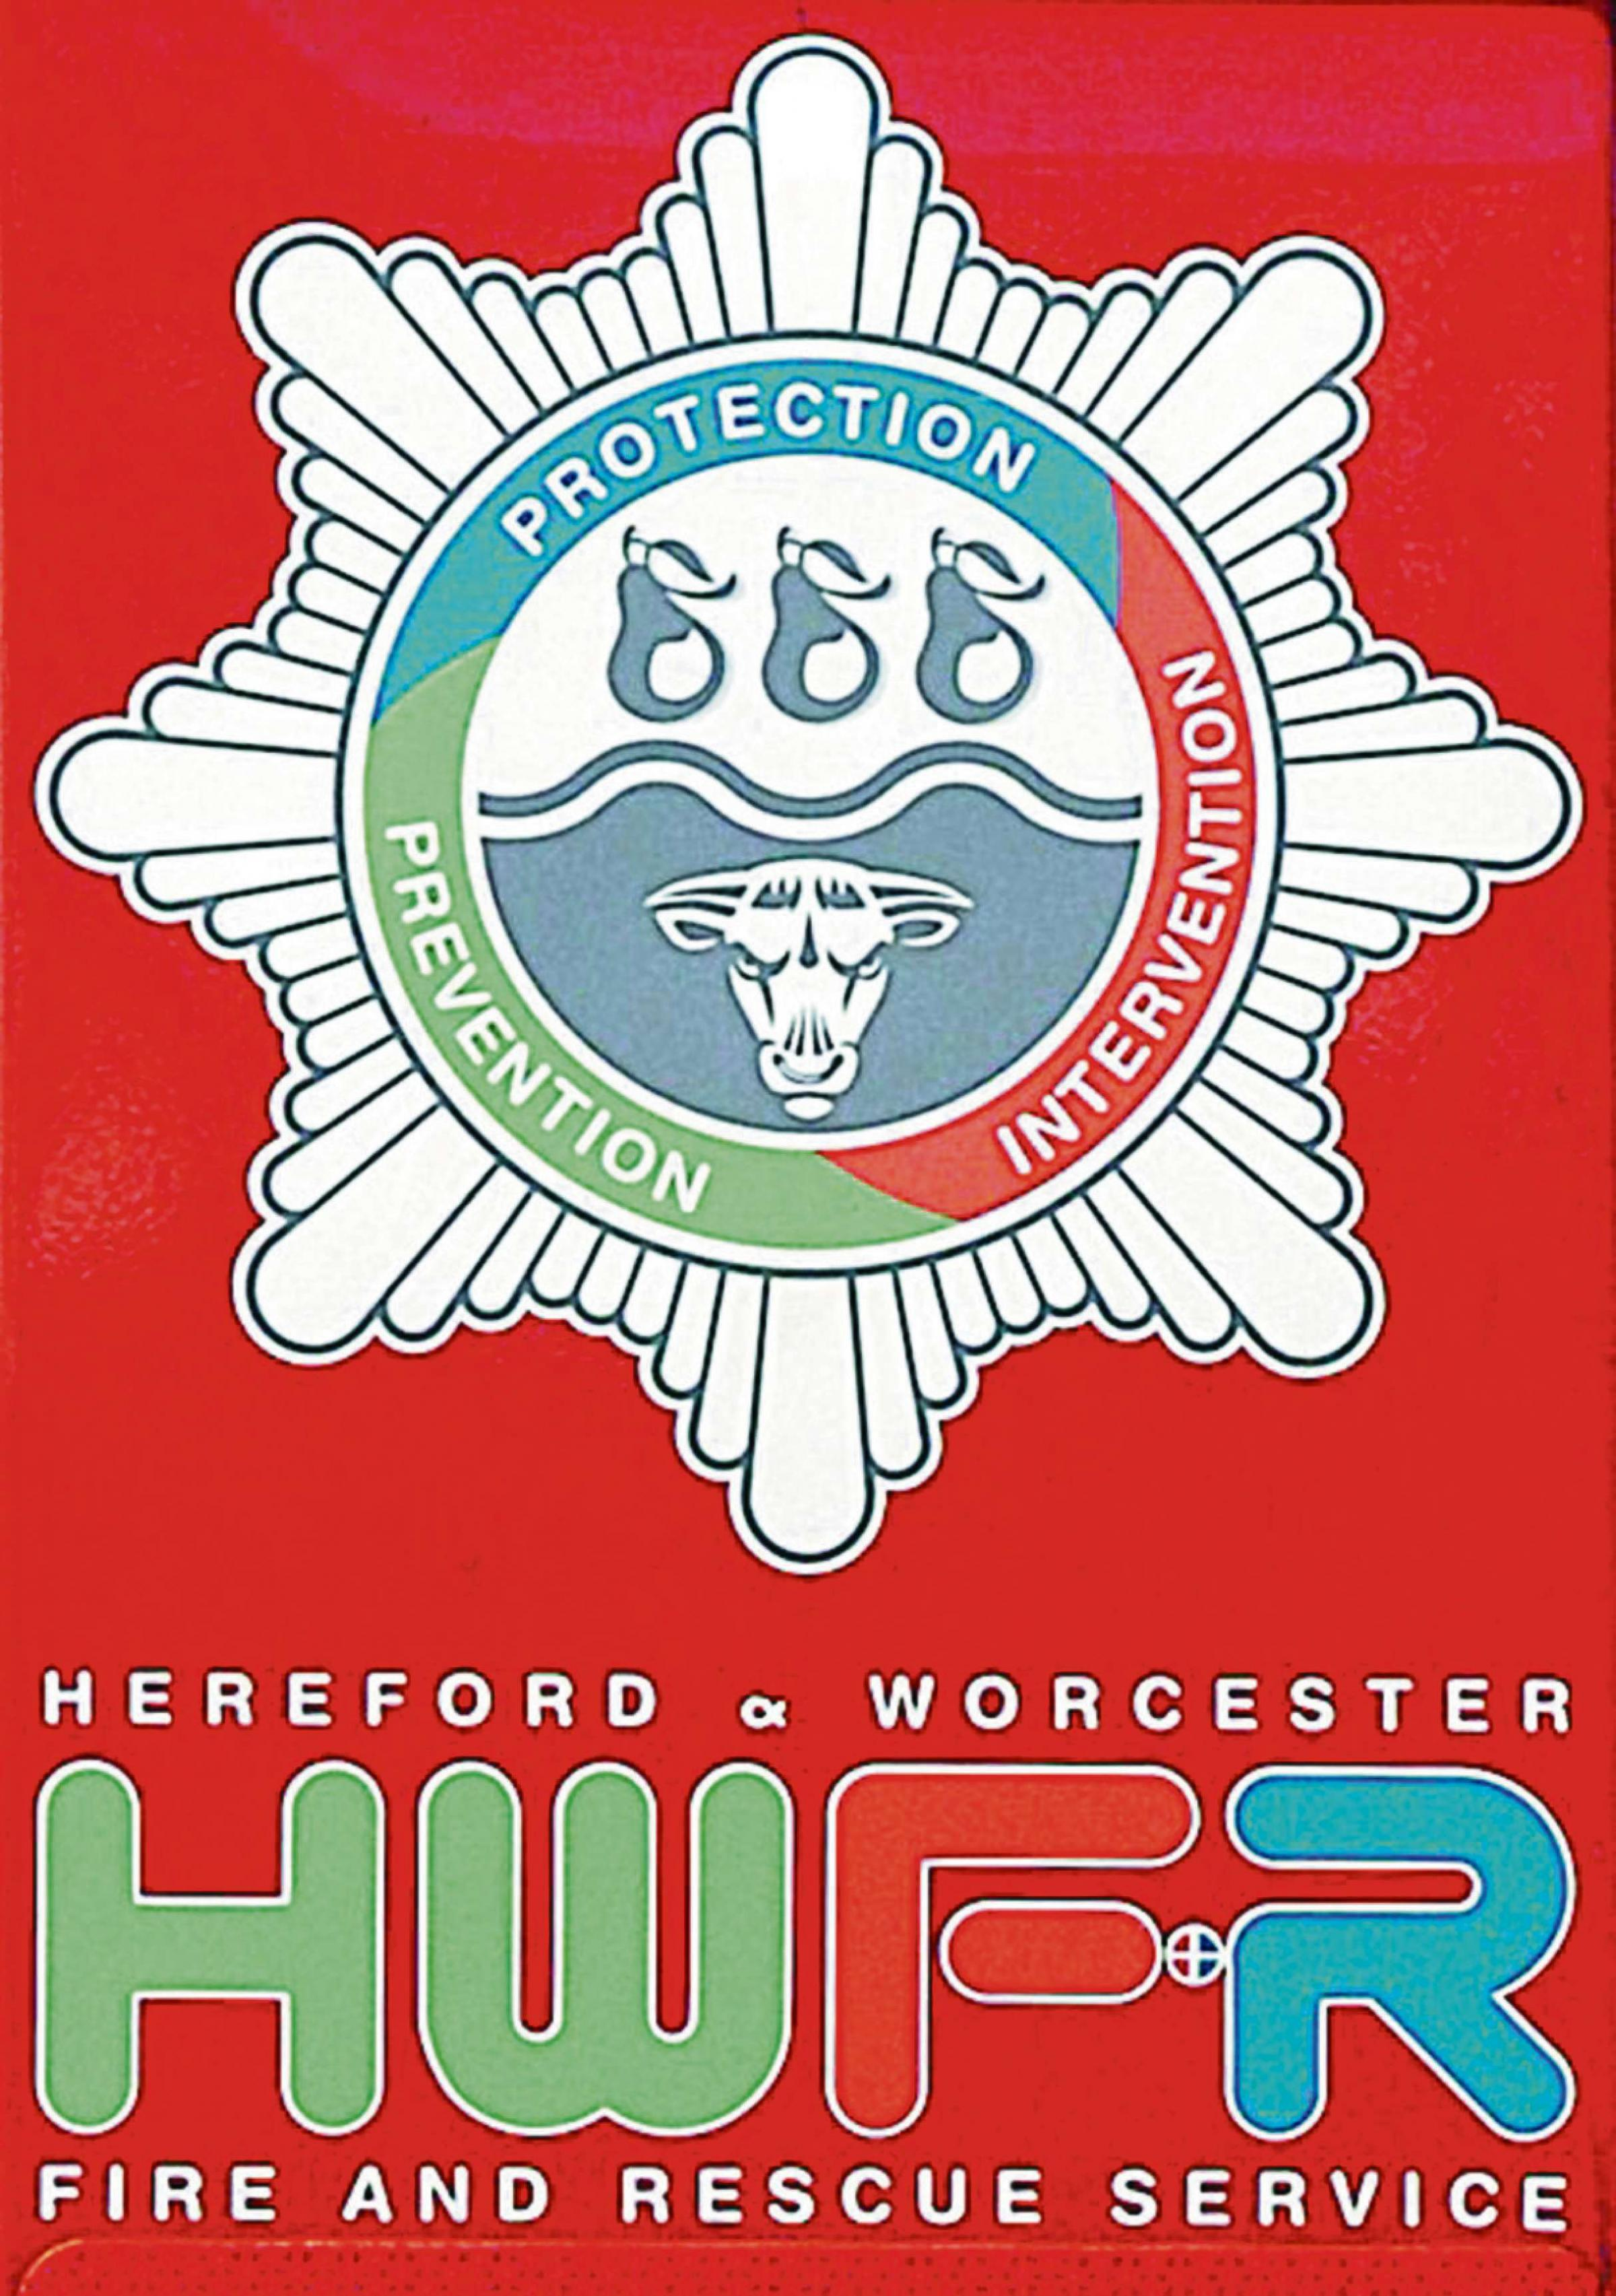 Hereford and Worcester Fire and Rescue Service will be holding an open day in Ross-on-Wye on Saturday.